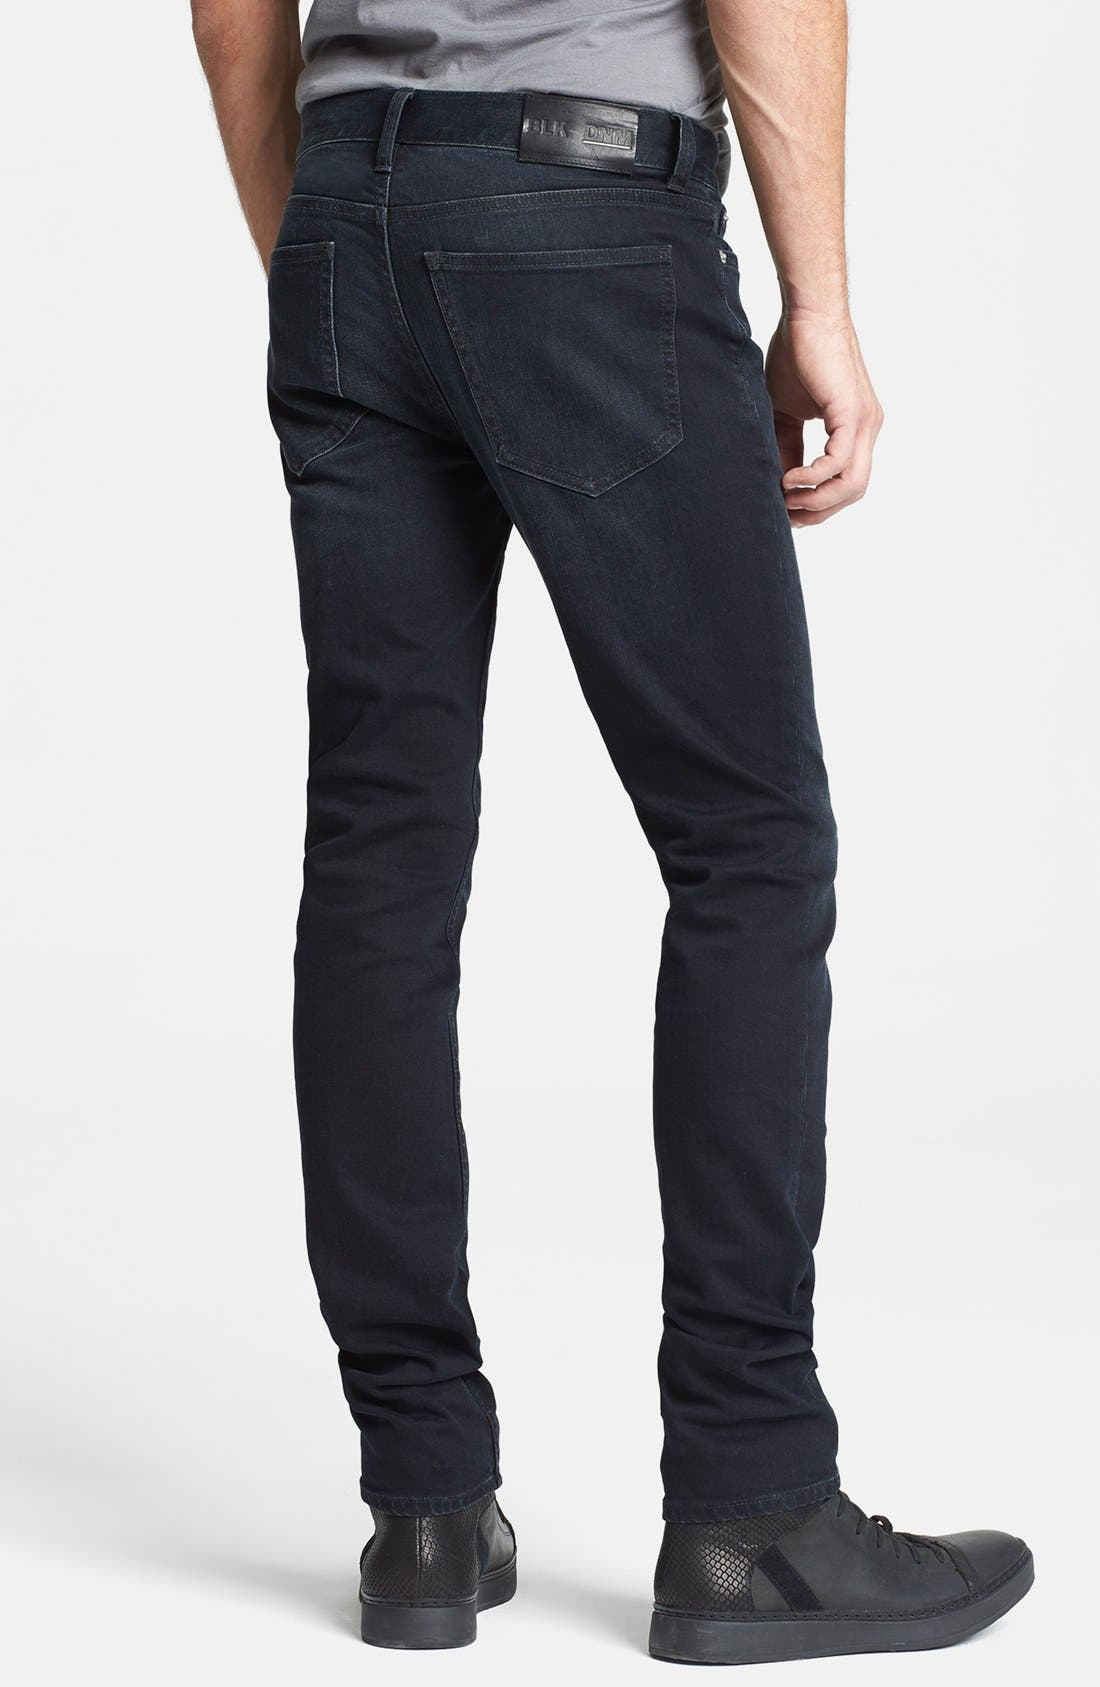 'Jeans 5' Slim Straight Leg Jeans,                             Alternate thumbnail 3, color,                             001